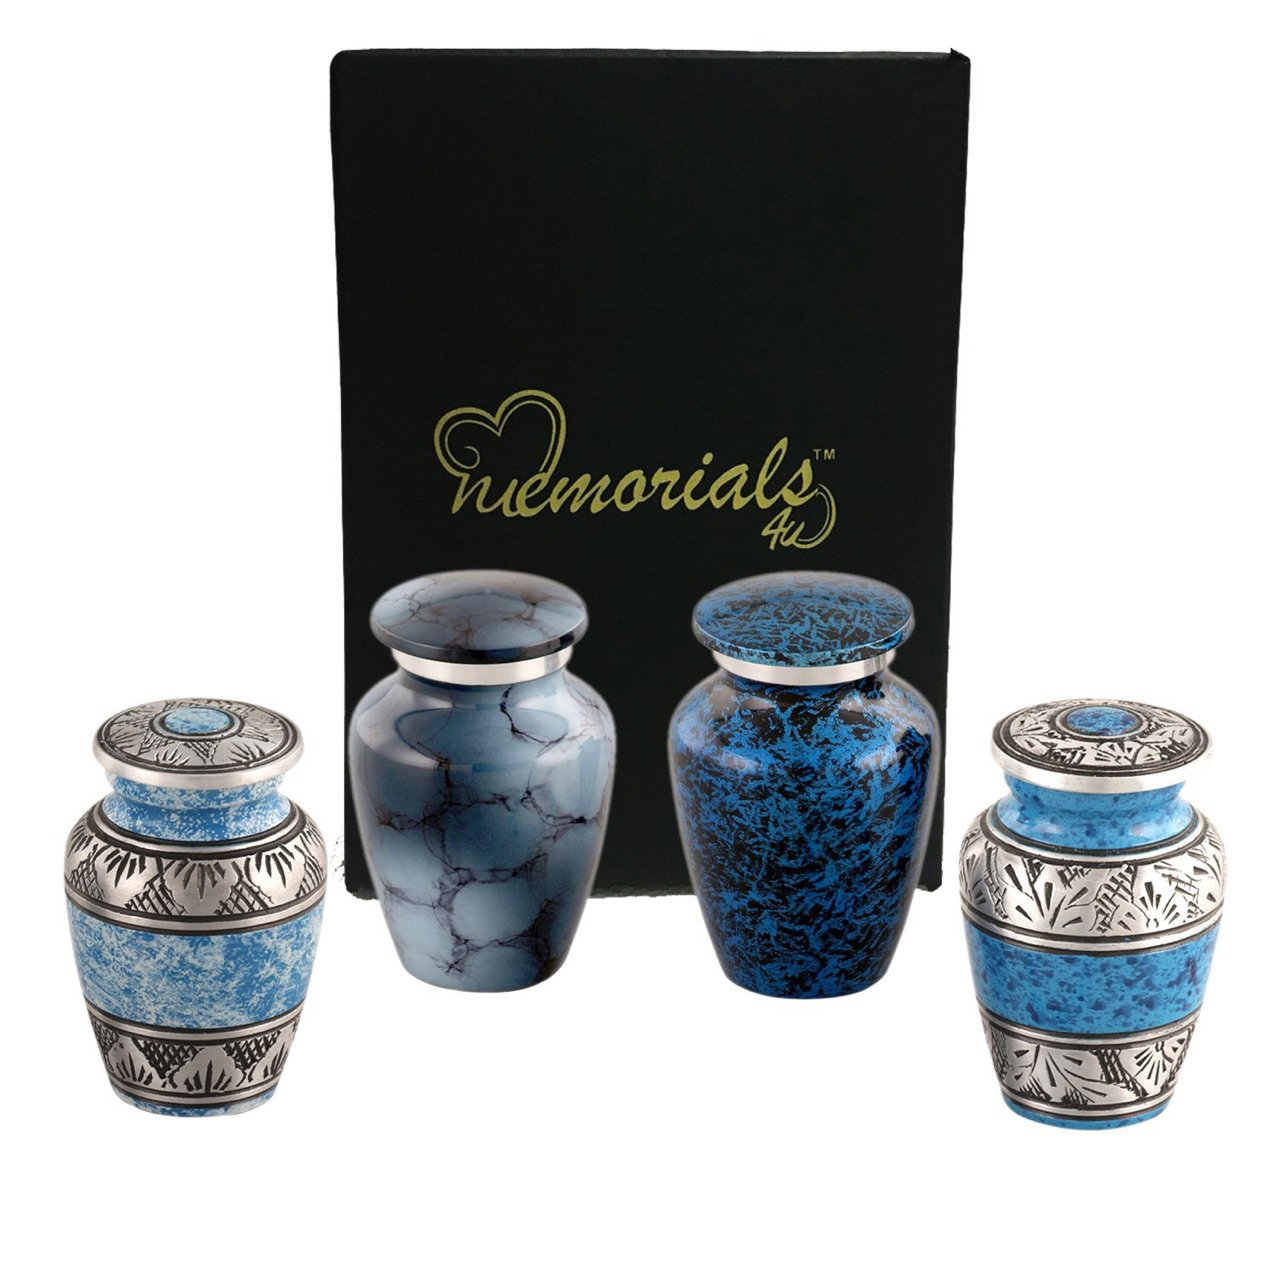 Forever in our Hearts Classic Blue Keepsake Urns Set of 4 - Beautiful Shades of Blue Mini Keepsakes - Keepsake Urns - Blue Token Urns - Handcrafted and Affordable Mini Urns for Ashes - Best Deal